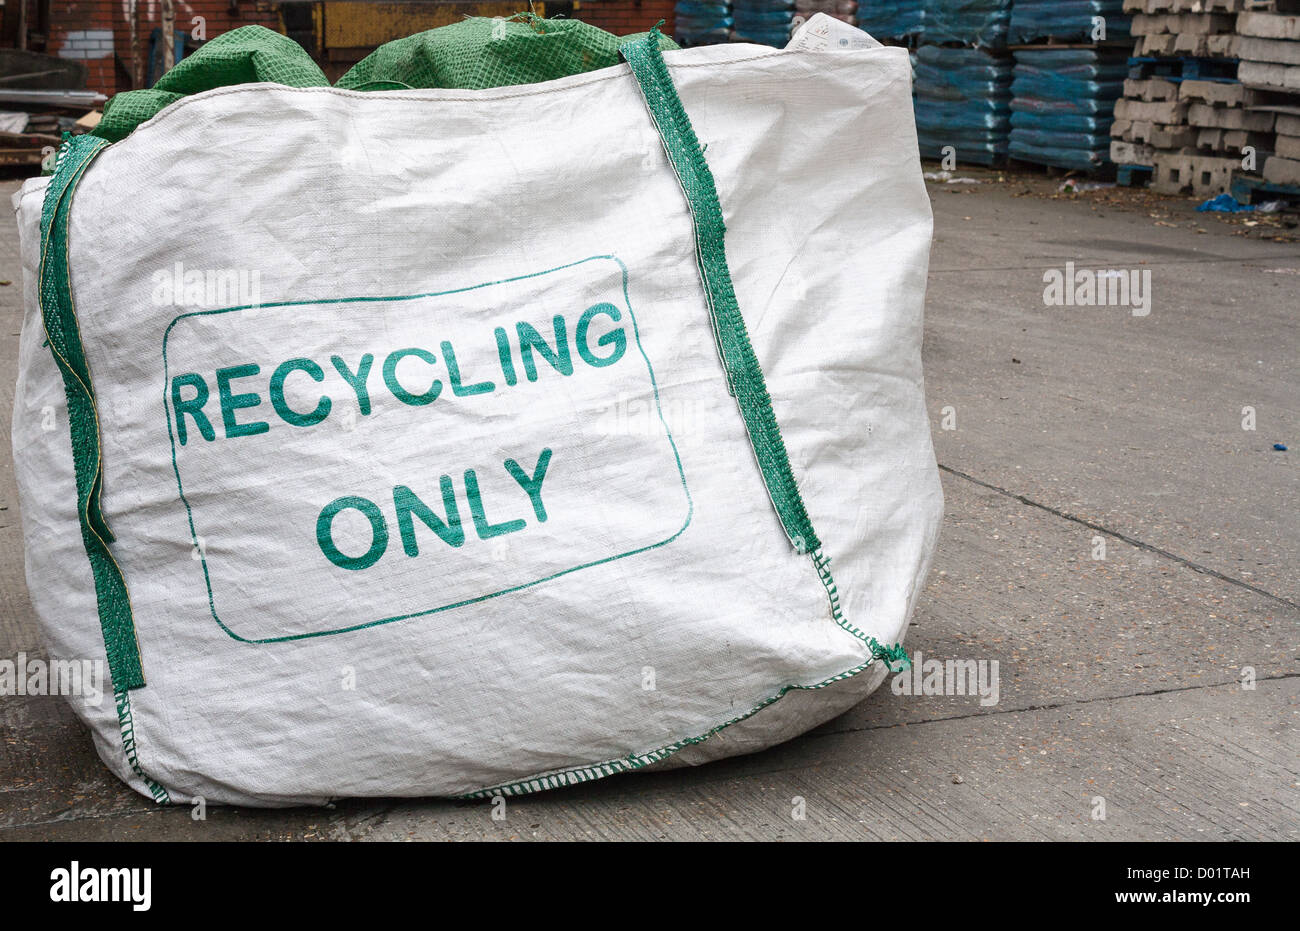 recycling global environment Stock Photo